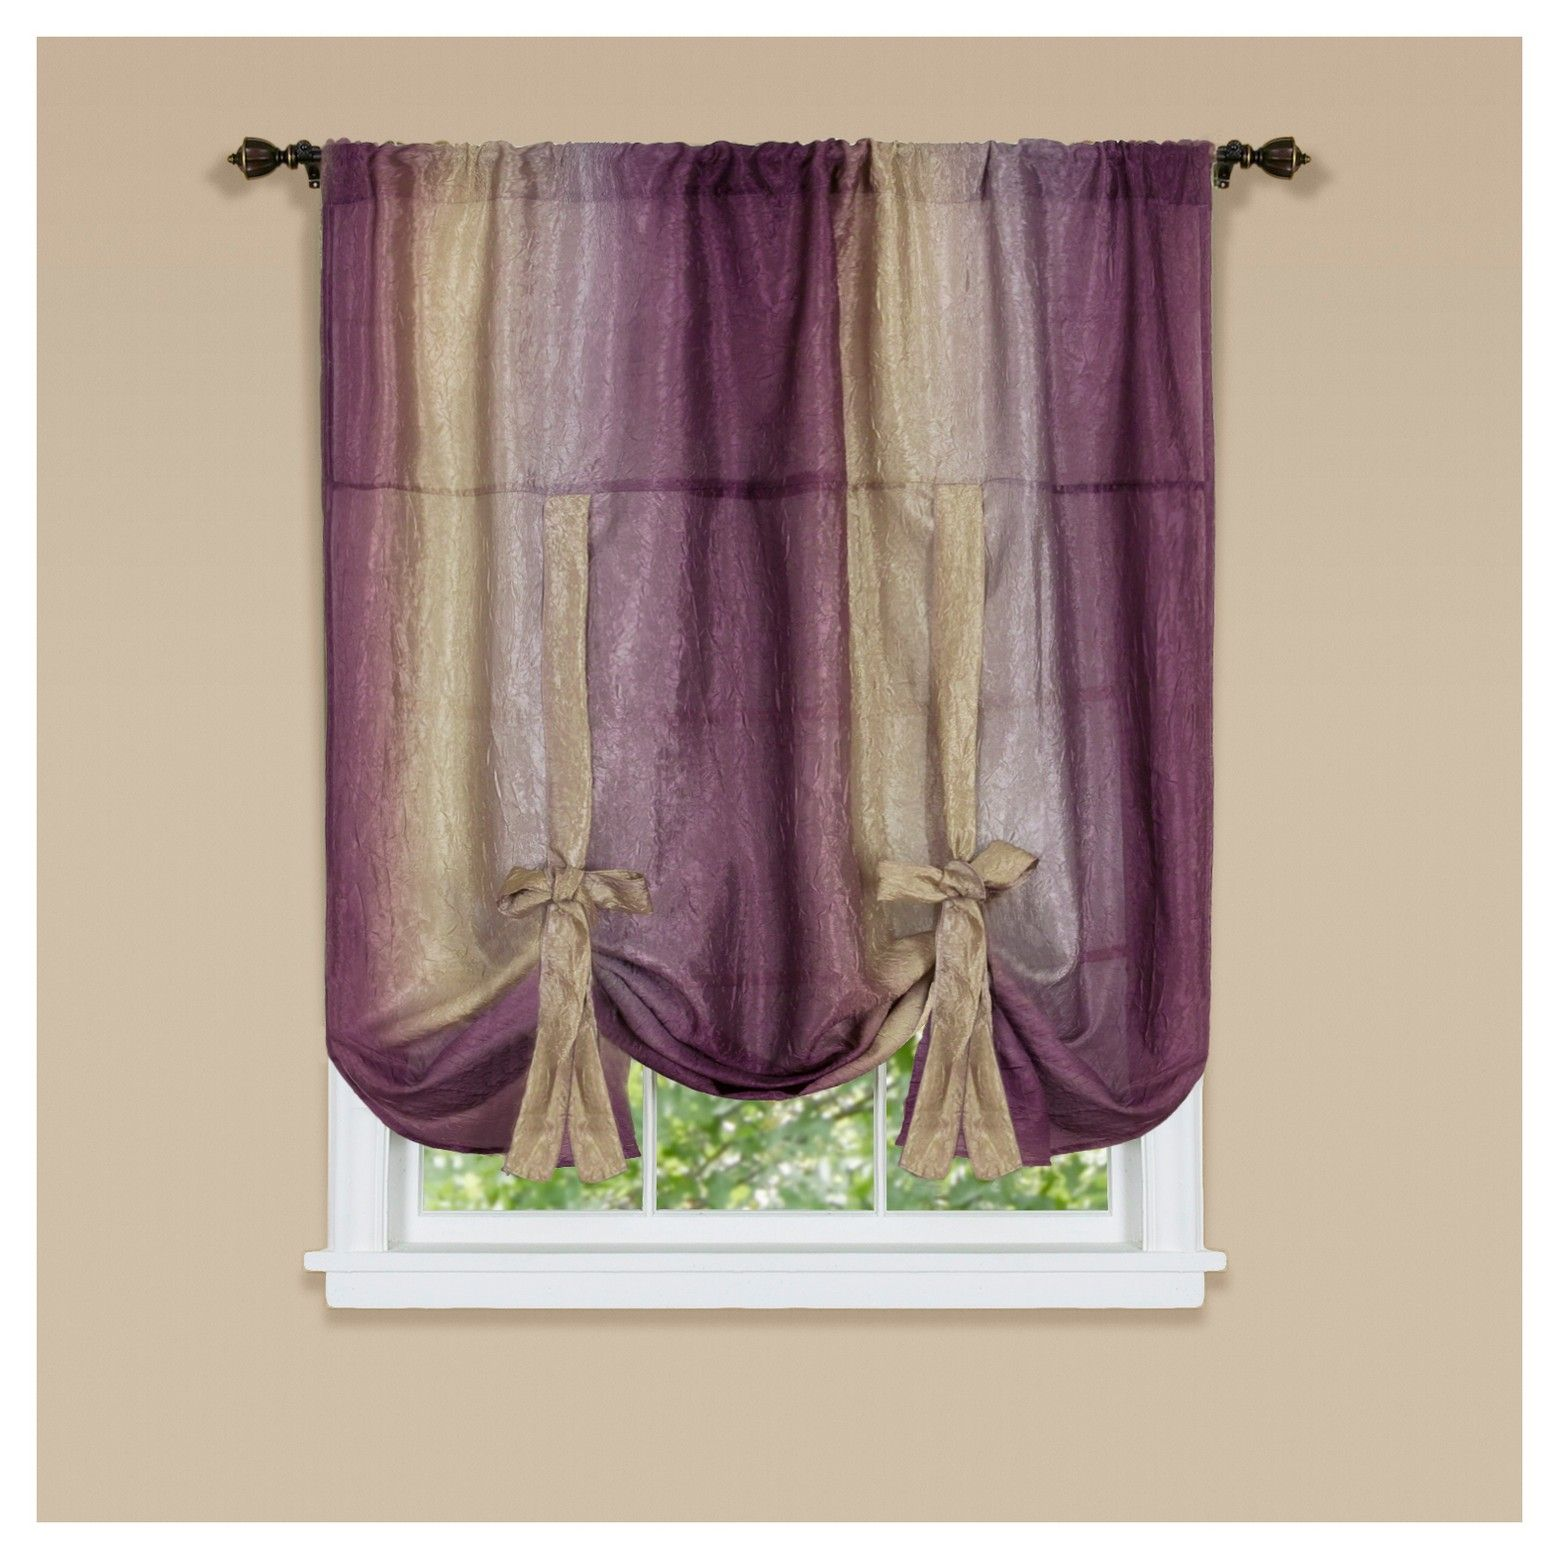 Ombre Window Curtain Tie Up Shade By Achim Aubergine 50 63 14 Tie Up Shades Tie Up Curtains Window Shades